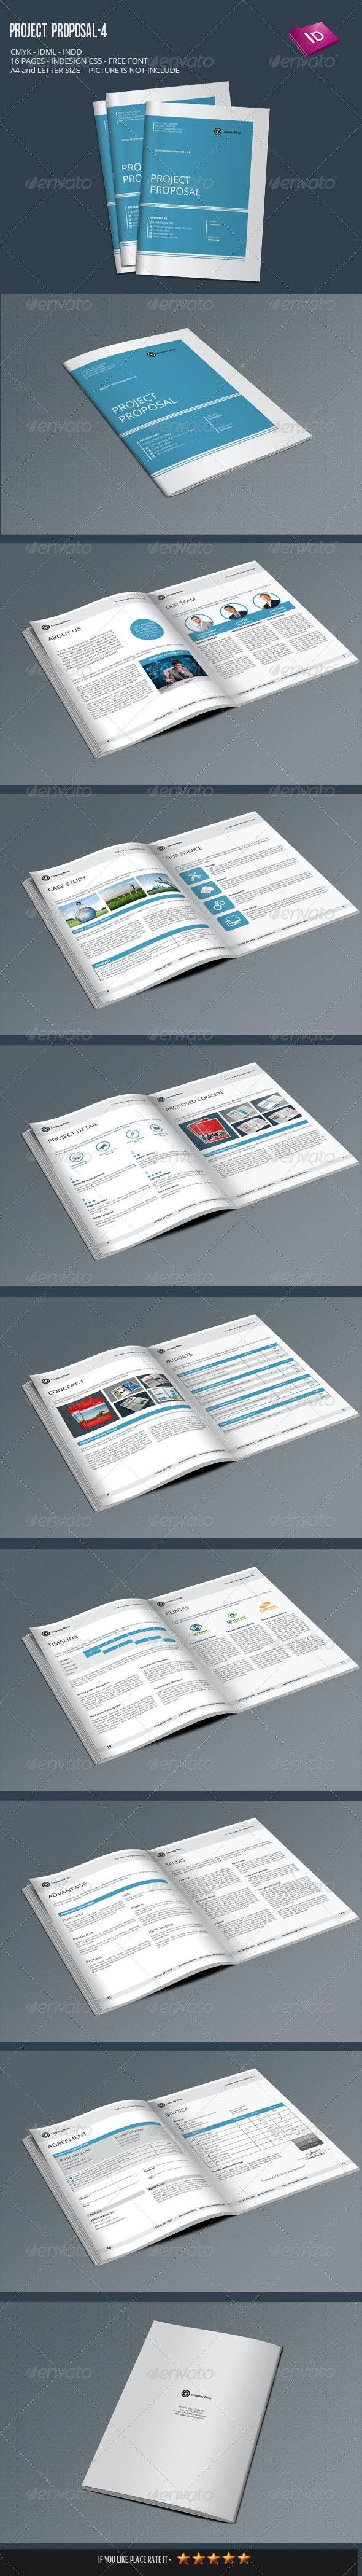 Project Proposal-4 - Proposals & Invoices Stationery